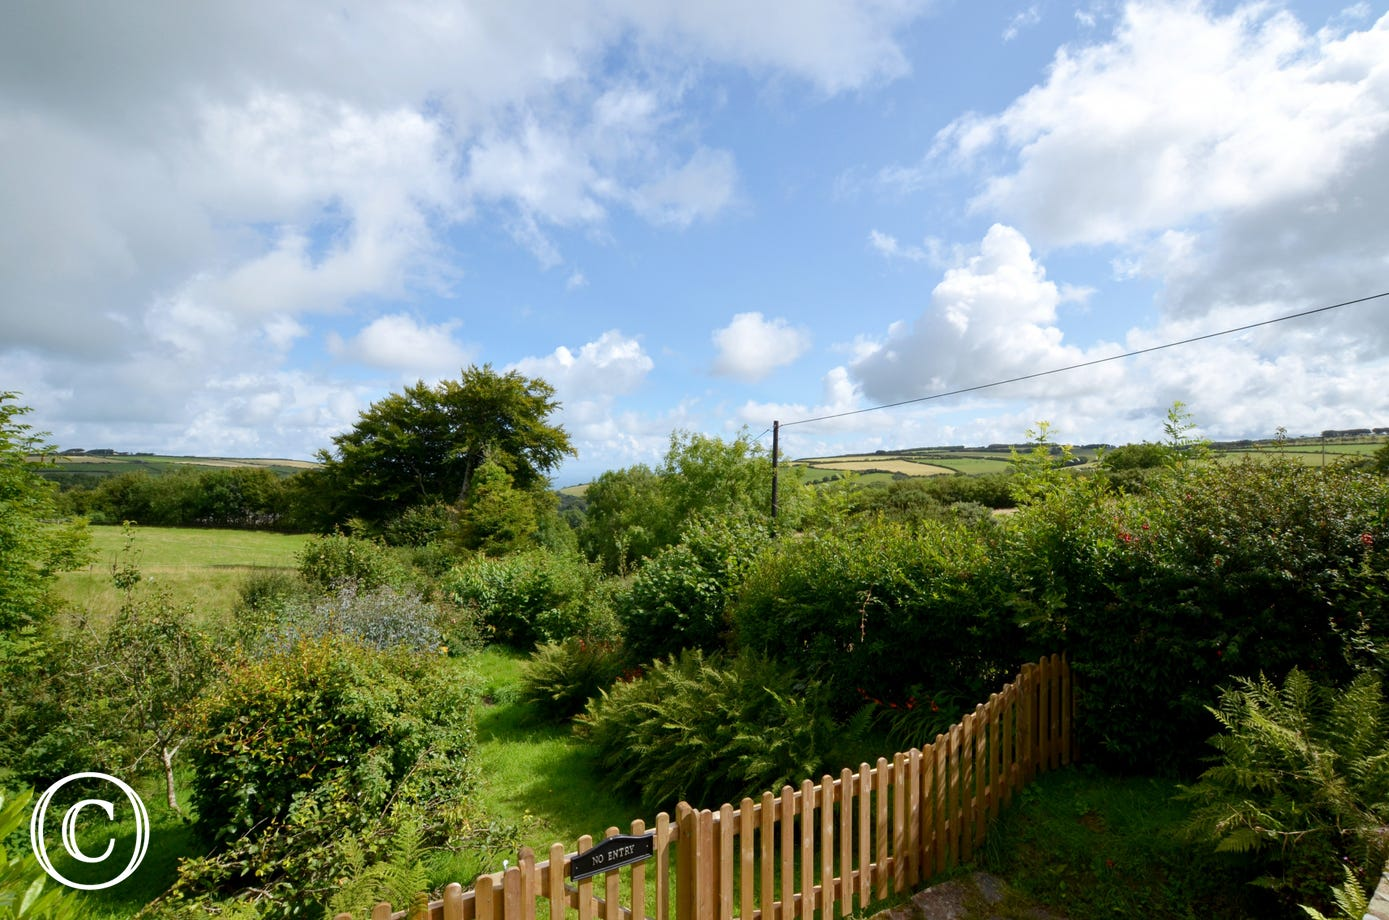 There are stunning views from the property and the garden - you won't be disappointed!